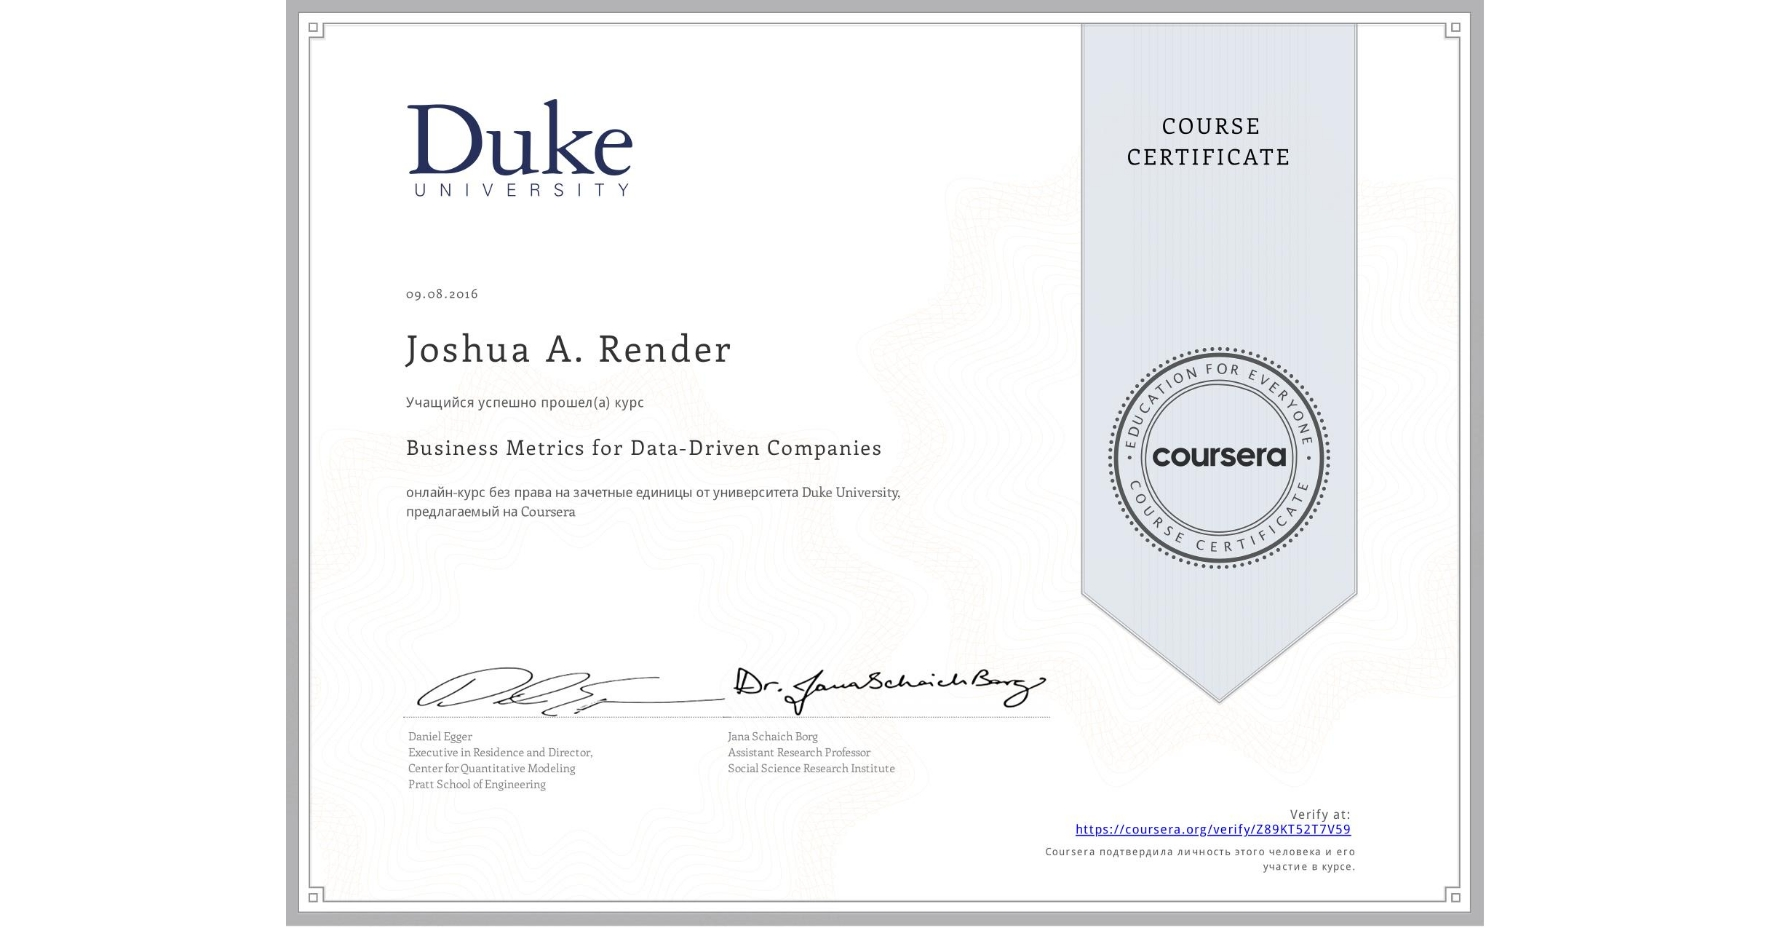 View certificate for Joshua A. Render, Business Metrics for Data-Driven Companies, an online non-credit course authorized by Duke University and offered through Coursera